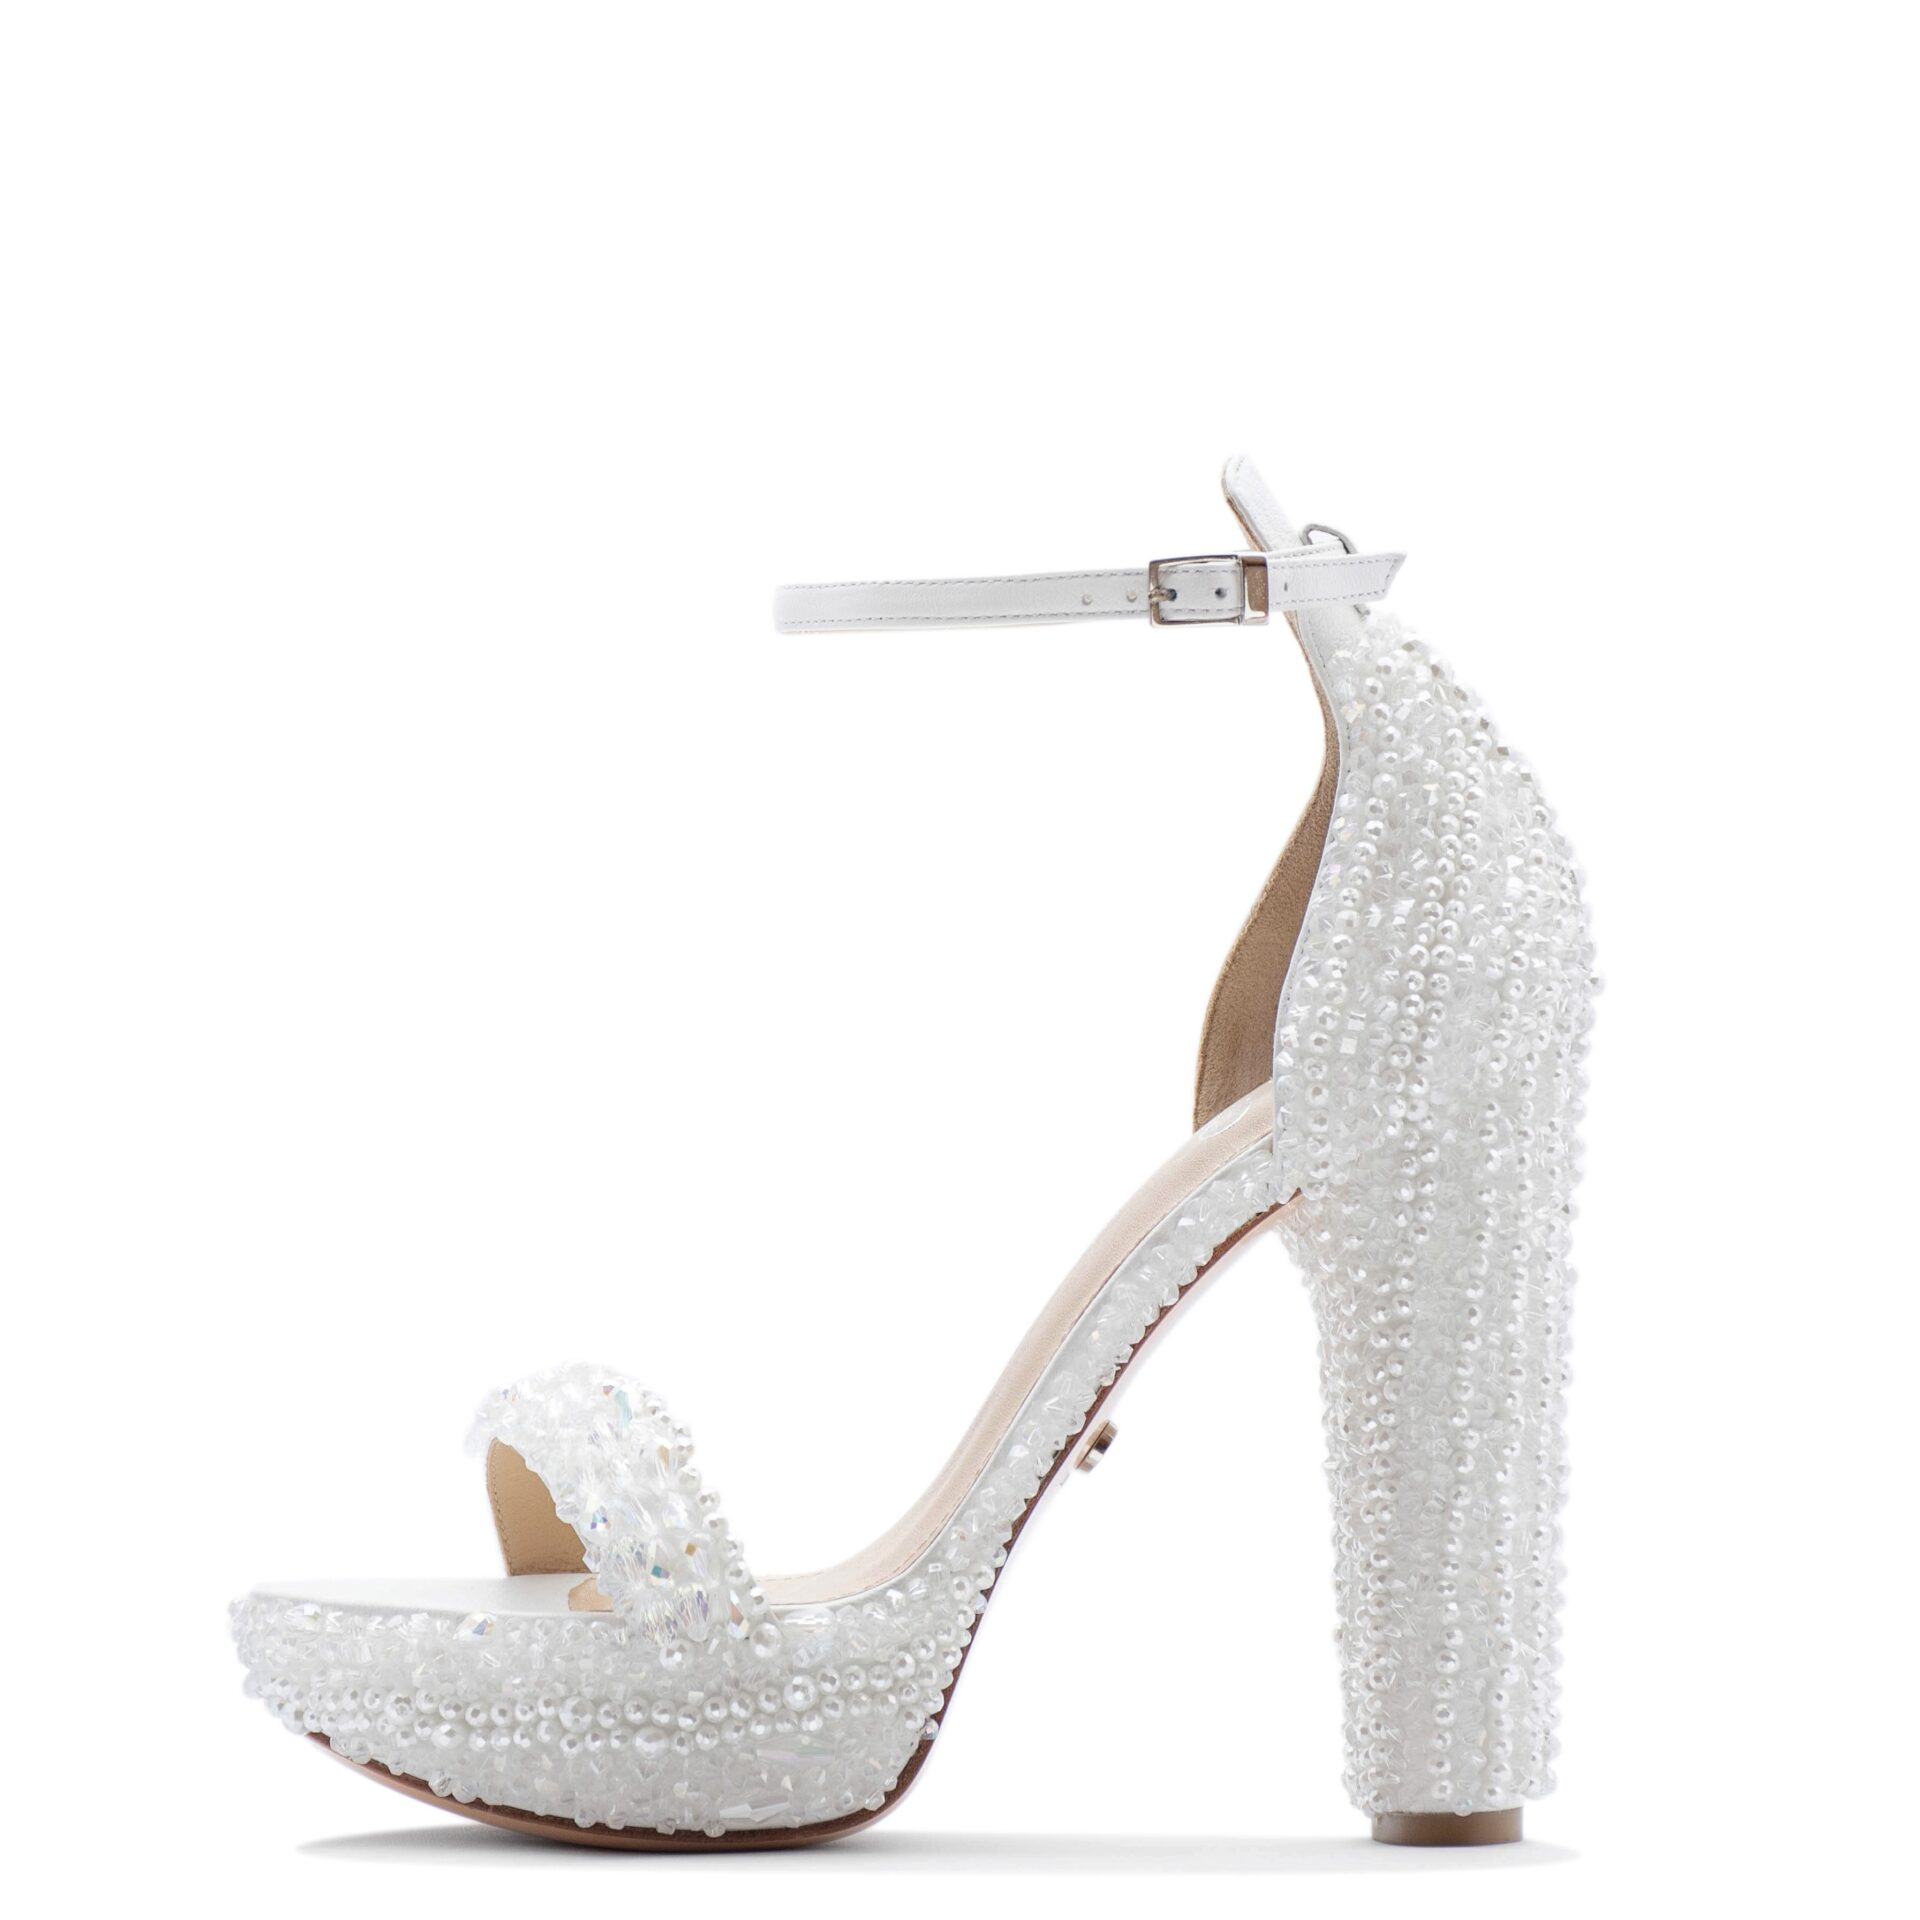 White wedding shoes with crystals